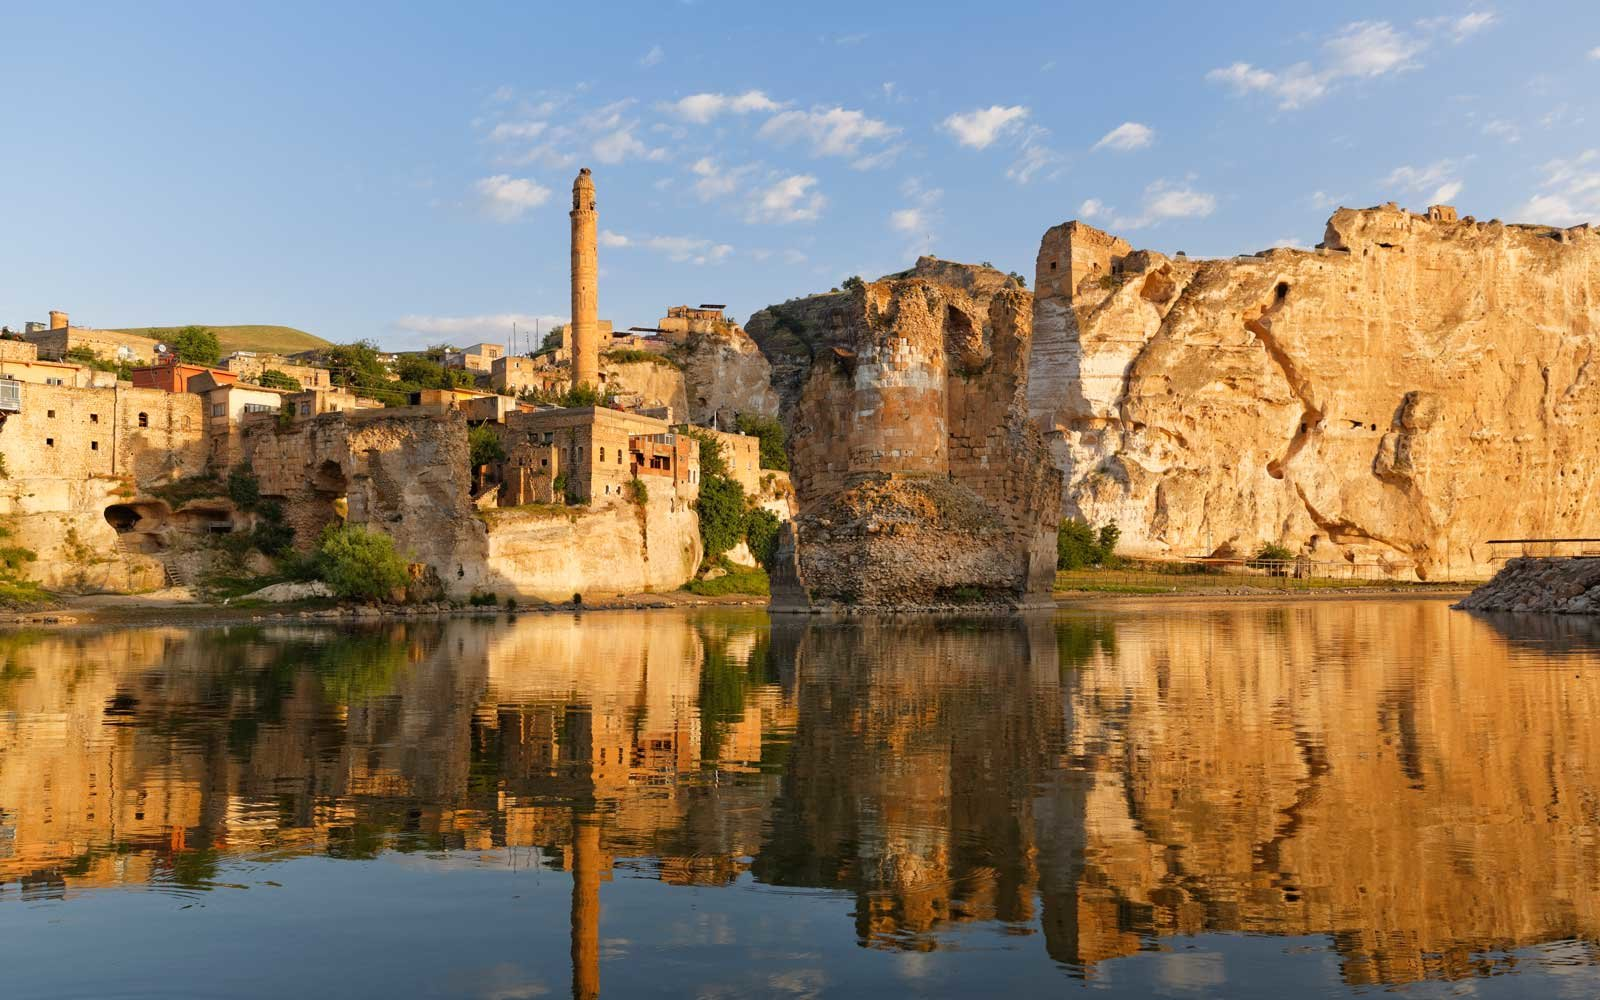 Turkey, Anatolia, Hasankeyf, minaret of El Rizk Mosque at River Tigris